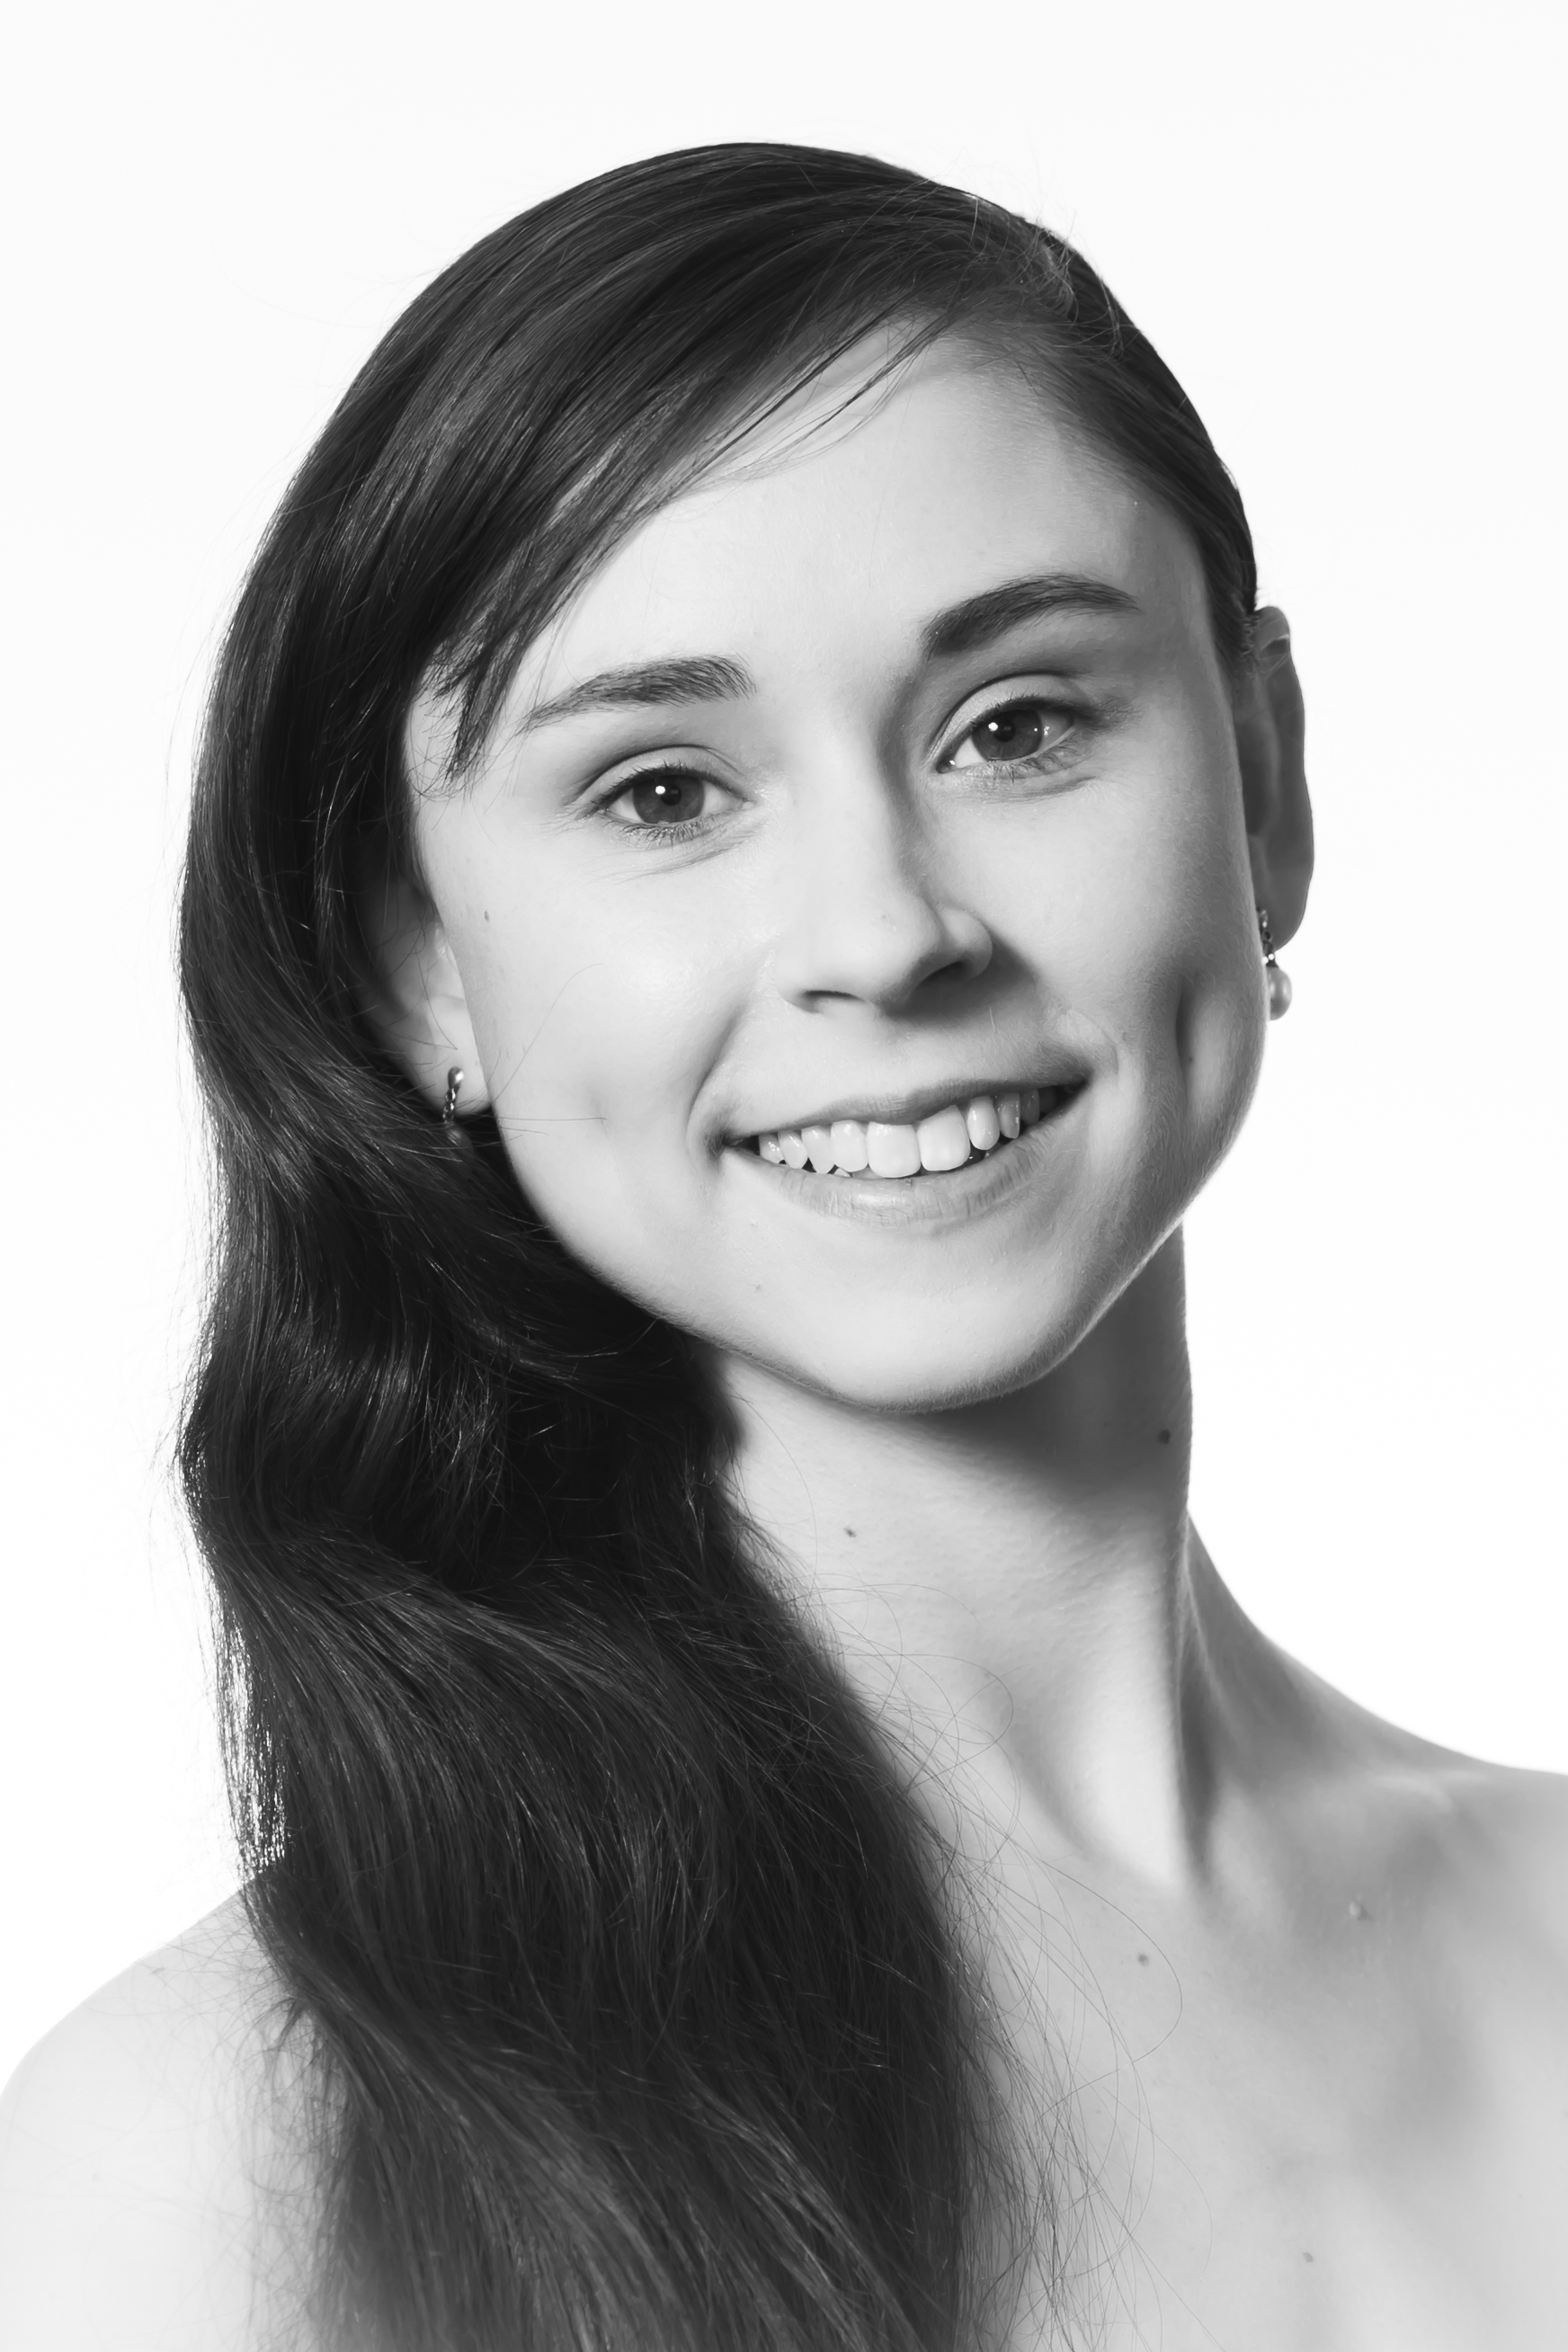 Alexandra Rolfe Company Artist   Alex began dancing at the age of five in Sydney,Australia at the Ku-ring-gai School of Dance before later training at Tanya Pearson Classical Coaching Academy, St Leonards. At 15, Alex moved to Melbourne to commence full time studies at the Australian Ballet School, attaining the level 4 Award for Excellence in her first year. Several years later, Alex moved back to Sydney to attend the Australian International Ballet Academy before gaining a finishing year position at the Nationale Balletacademie in Amsterdam, Holland.  During this time Alex was fortunate to work with Het Nationale (Dutch National Ballet Company) as an extra in the companies productions of swan lake and nutcracker. Several months later Alex relocated to London, UK and was successful in receiving a short term contract with English National Ballet. Alex performed in the companies production of Swan Lake in -the-round choreographed by Derek Deane at the Royal Albert Hall. Following this, Alex moved to Lisbon, Portugal where she remained for 3 years as a corps de ballet member with the Companhia Nacional de Bailado.  Alex performed in a number of productions including Cinderella, swan lake, Firebird, Orfeu E Euridice, Sleeping Beauty and the Nutcracker. Alex's career highlights include performing George Balanchine's 'Serenade, Hans Van Manen's '5 Tangoes' and the iconic Queen of the Wilis.Before joining MCB Alex peformed with the Australian Ballet during their production of 'Alice's Adventures in Wonderland' in Sydney.' Alex joined MCB this year as a junior artist.